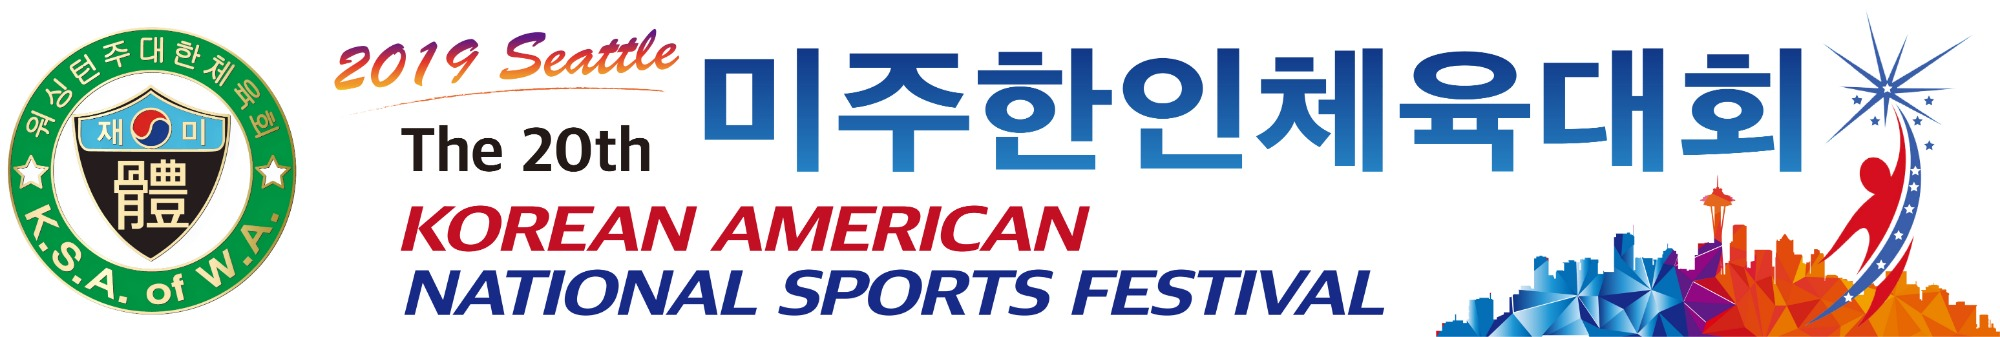 Korean American National Sports Festival | Federal Way Tourism